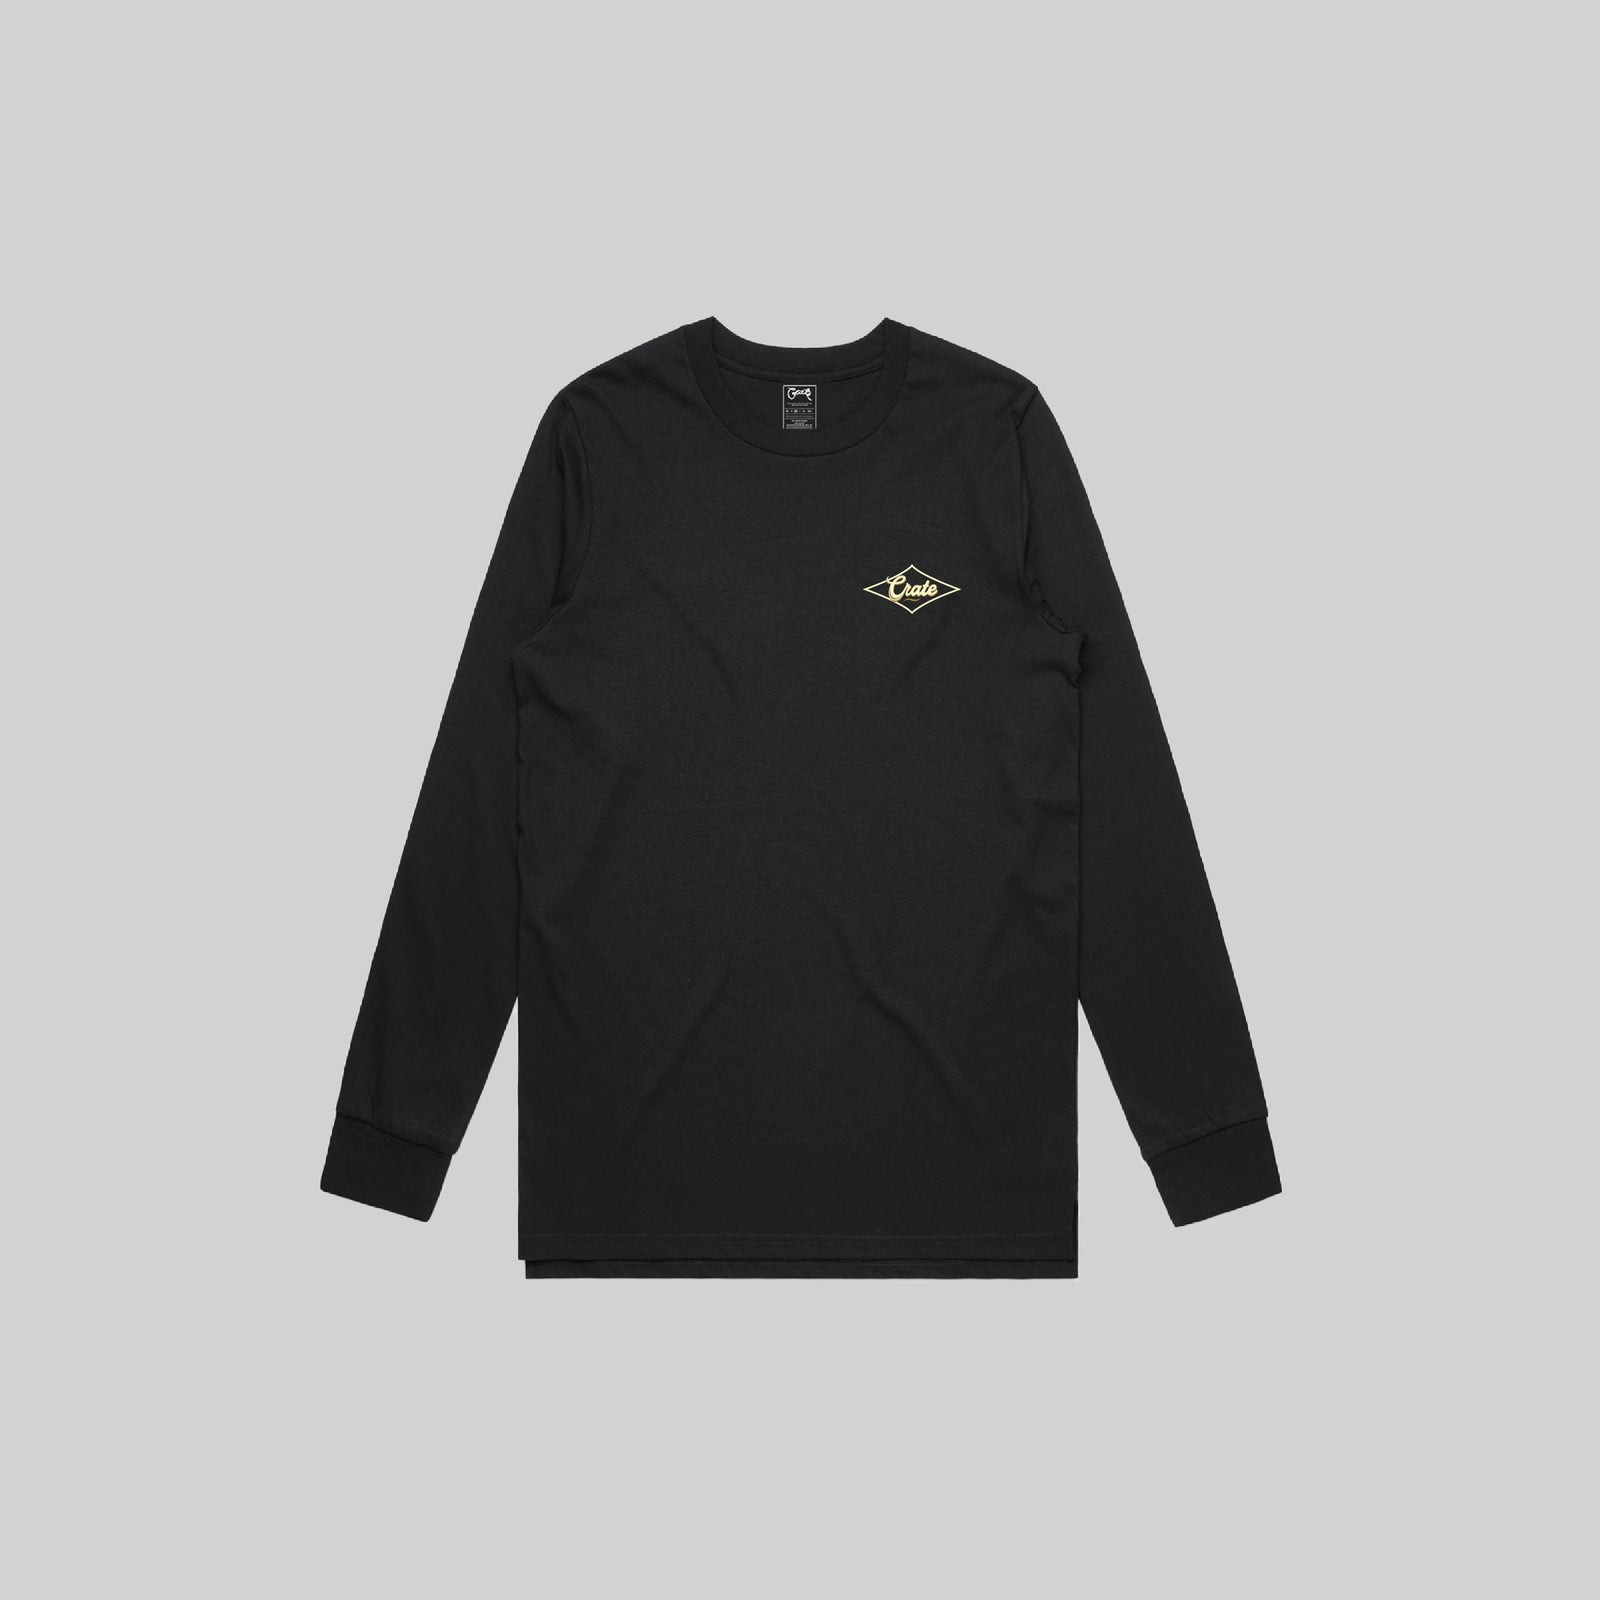 MENS AUTOGRAPH LONG SLEEVE T-SHIRT